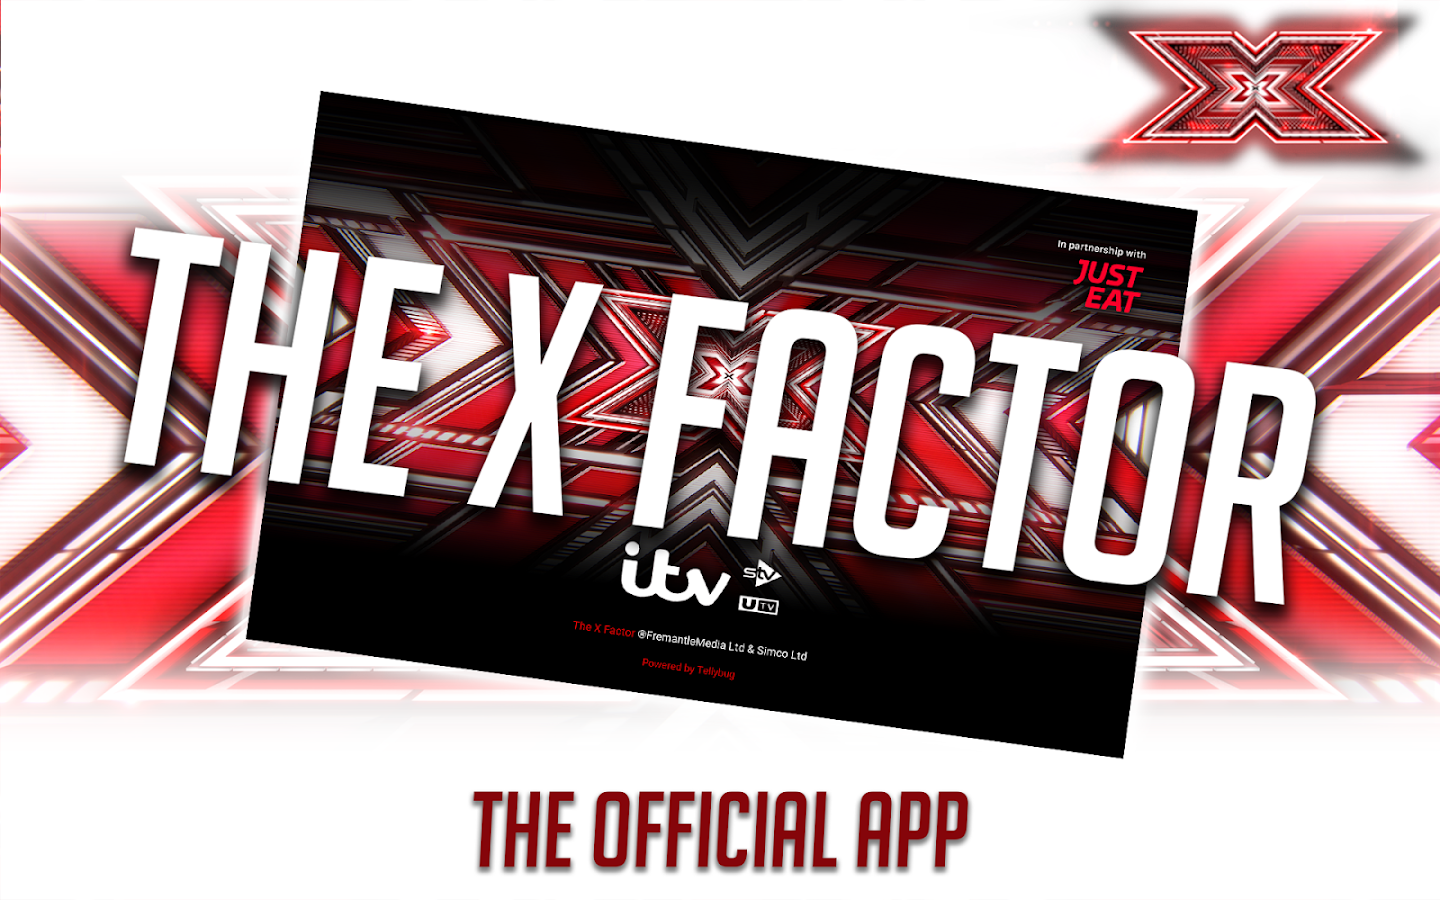 x factor voting online for free